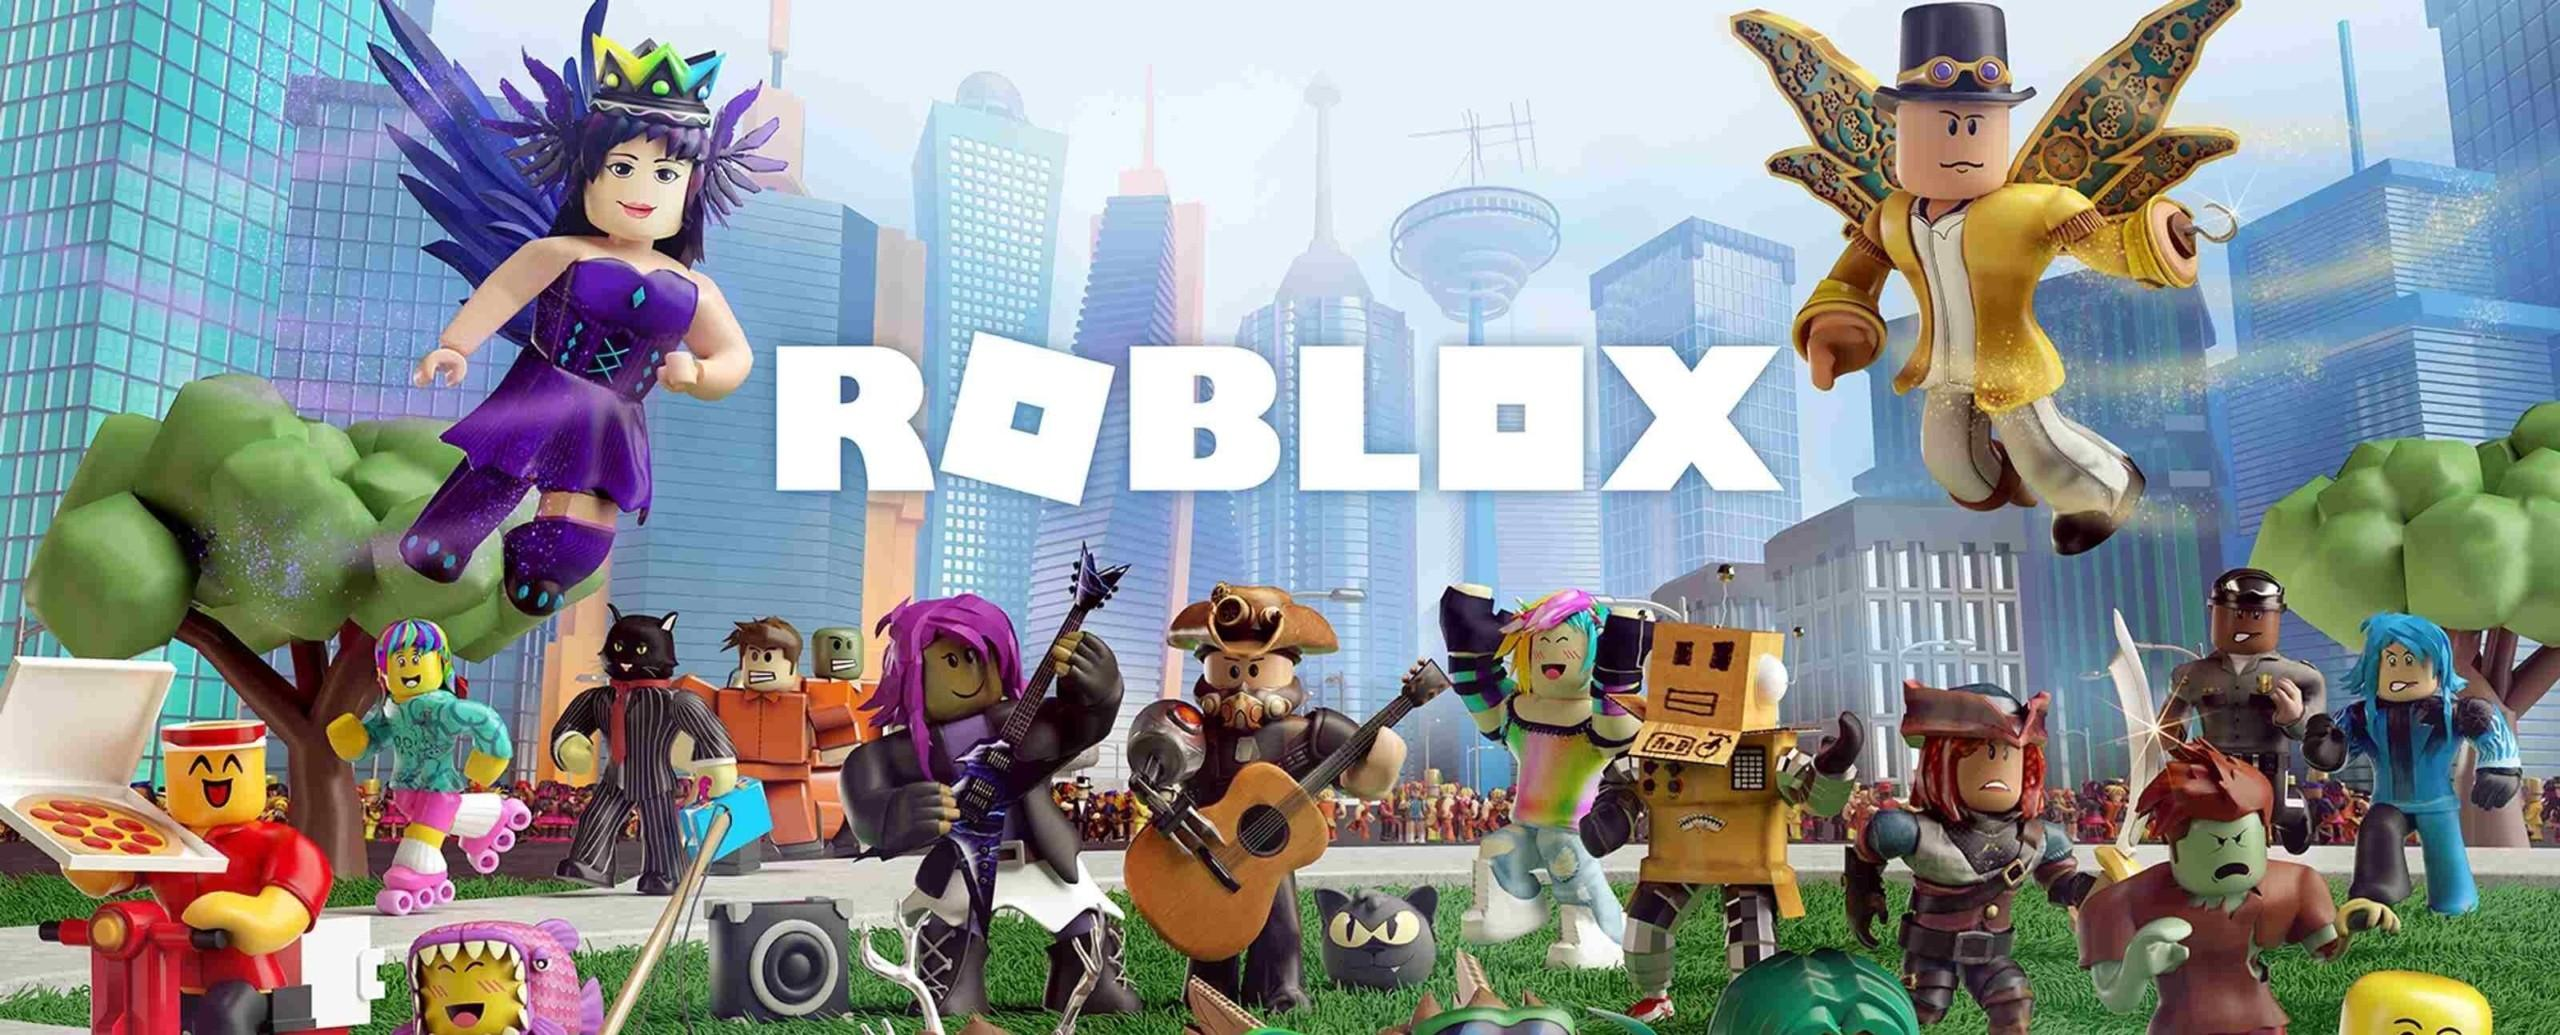 How to give Robux to people on Roblox Game